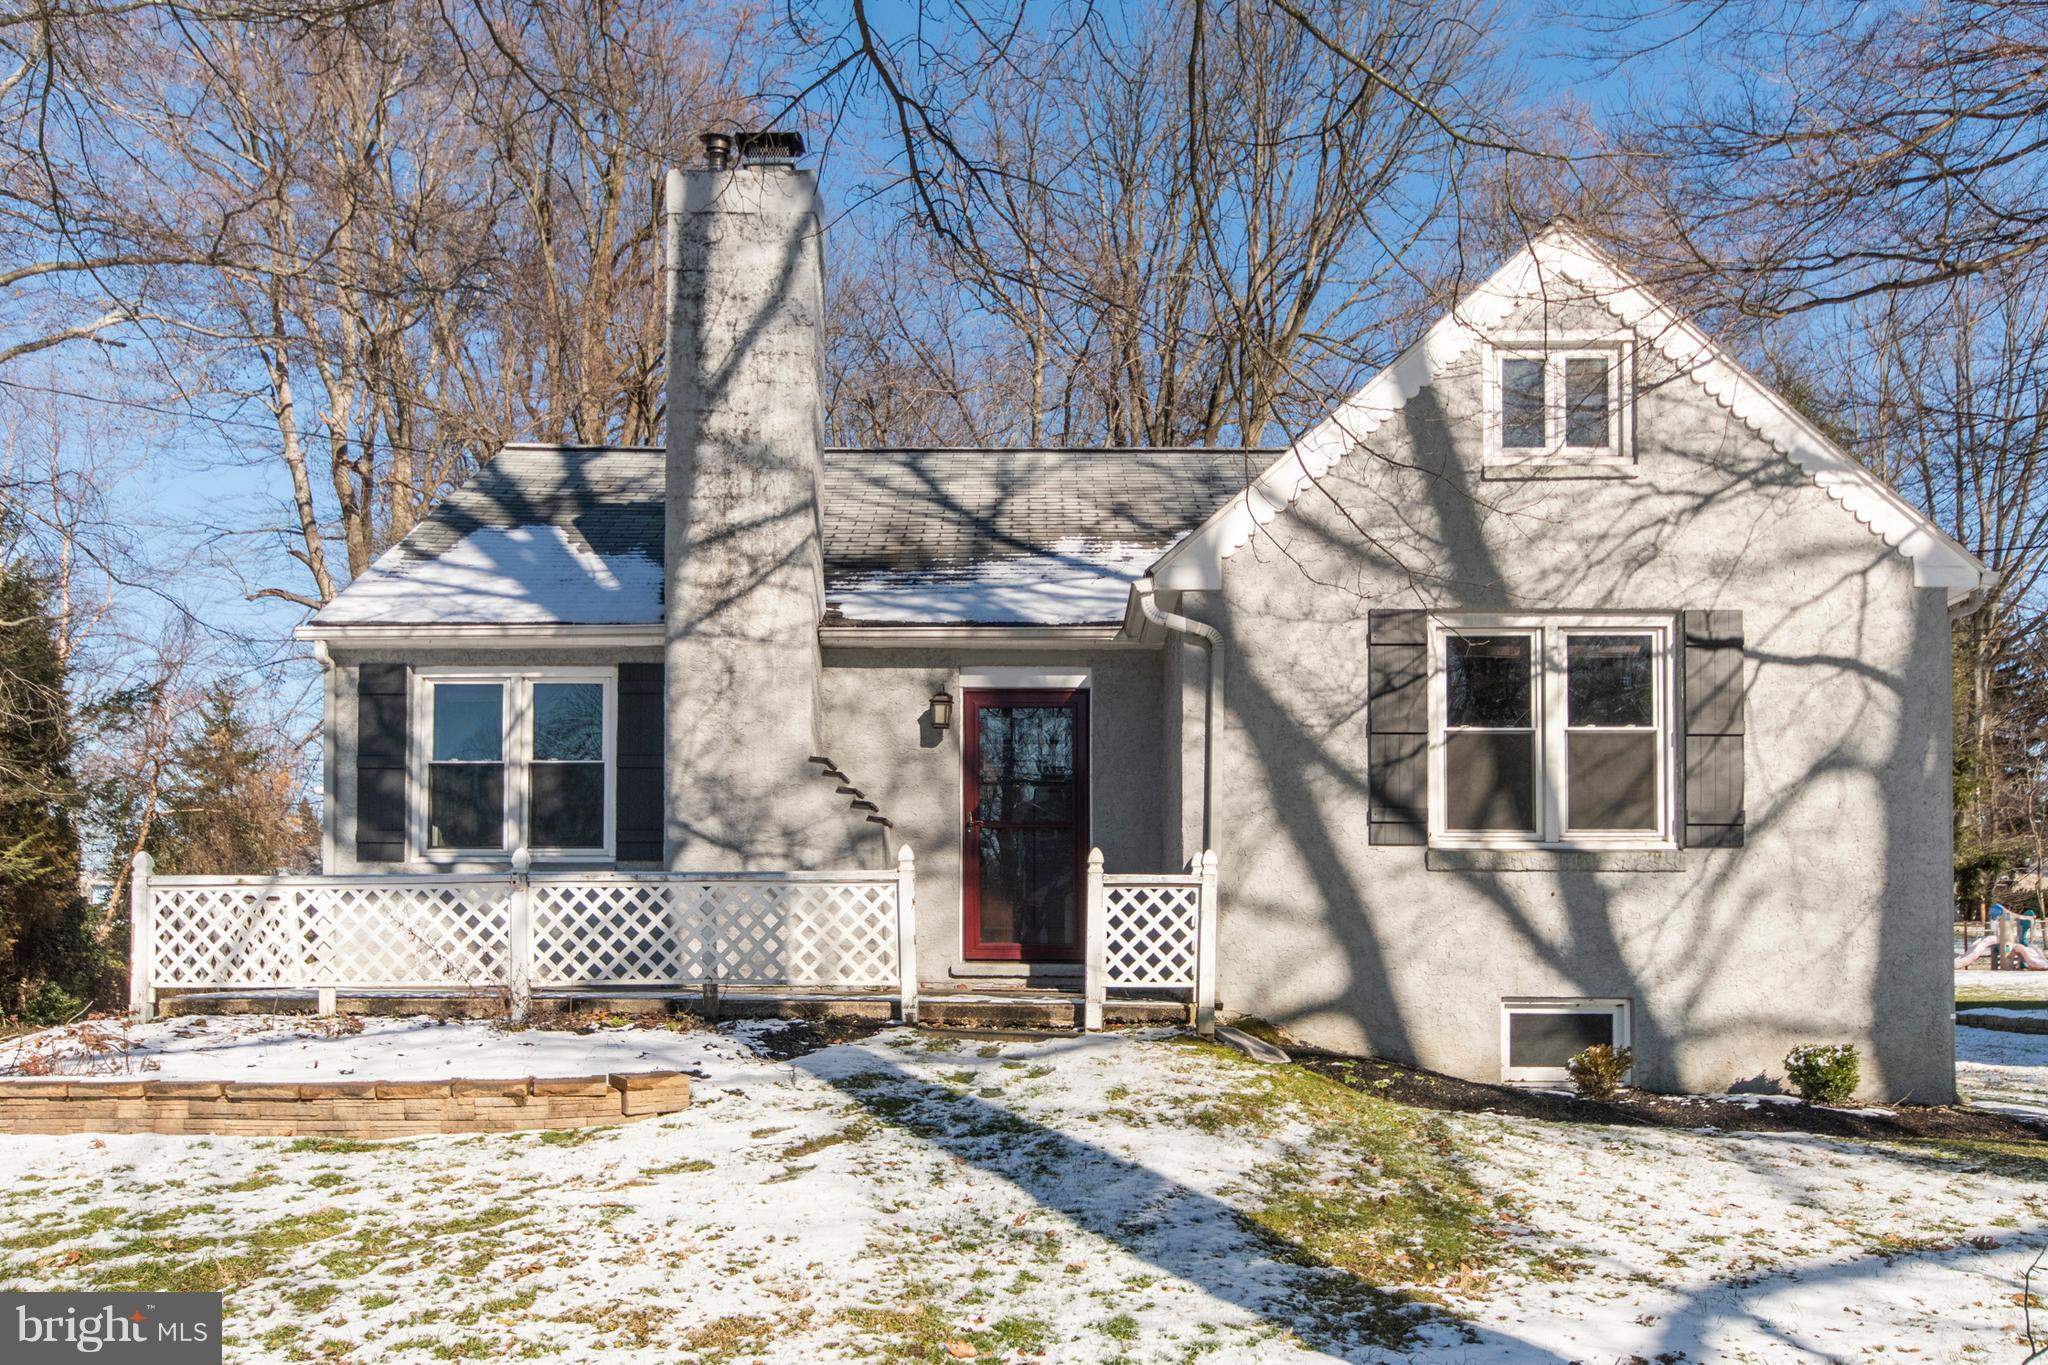 2957 OLD WELSH ROAD, WILLOW GROVE, PA 19090